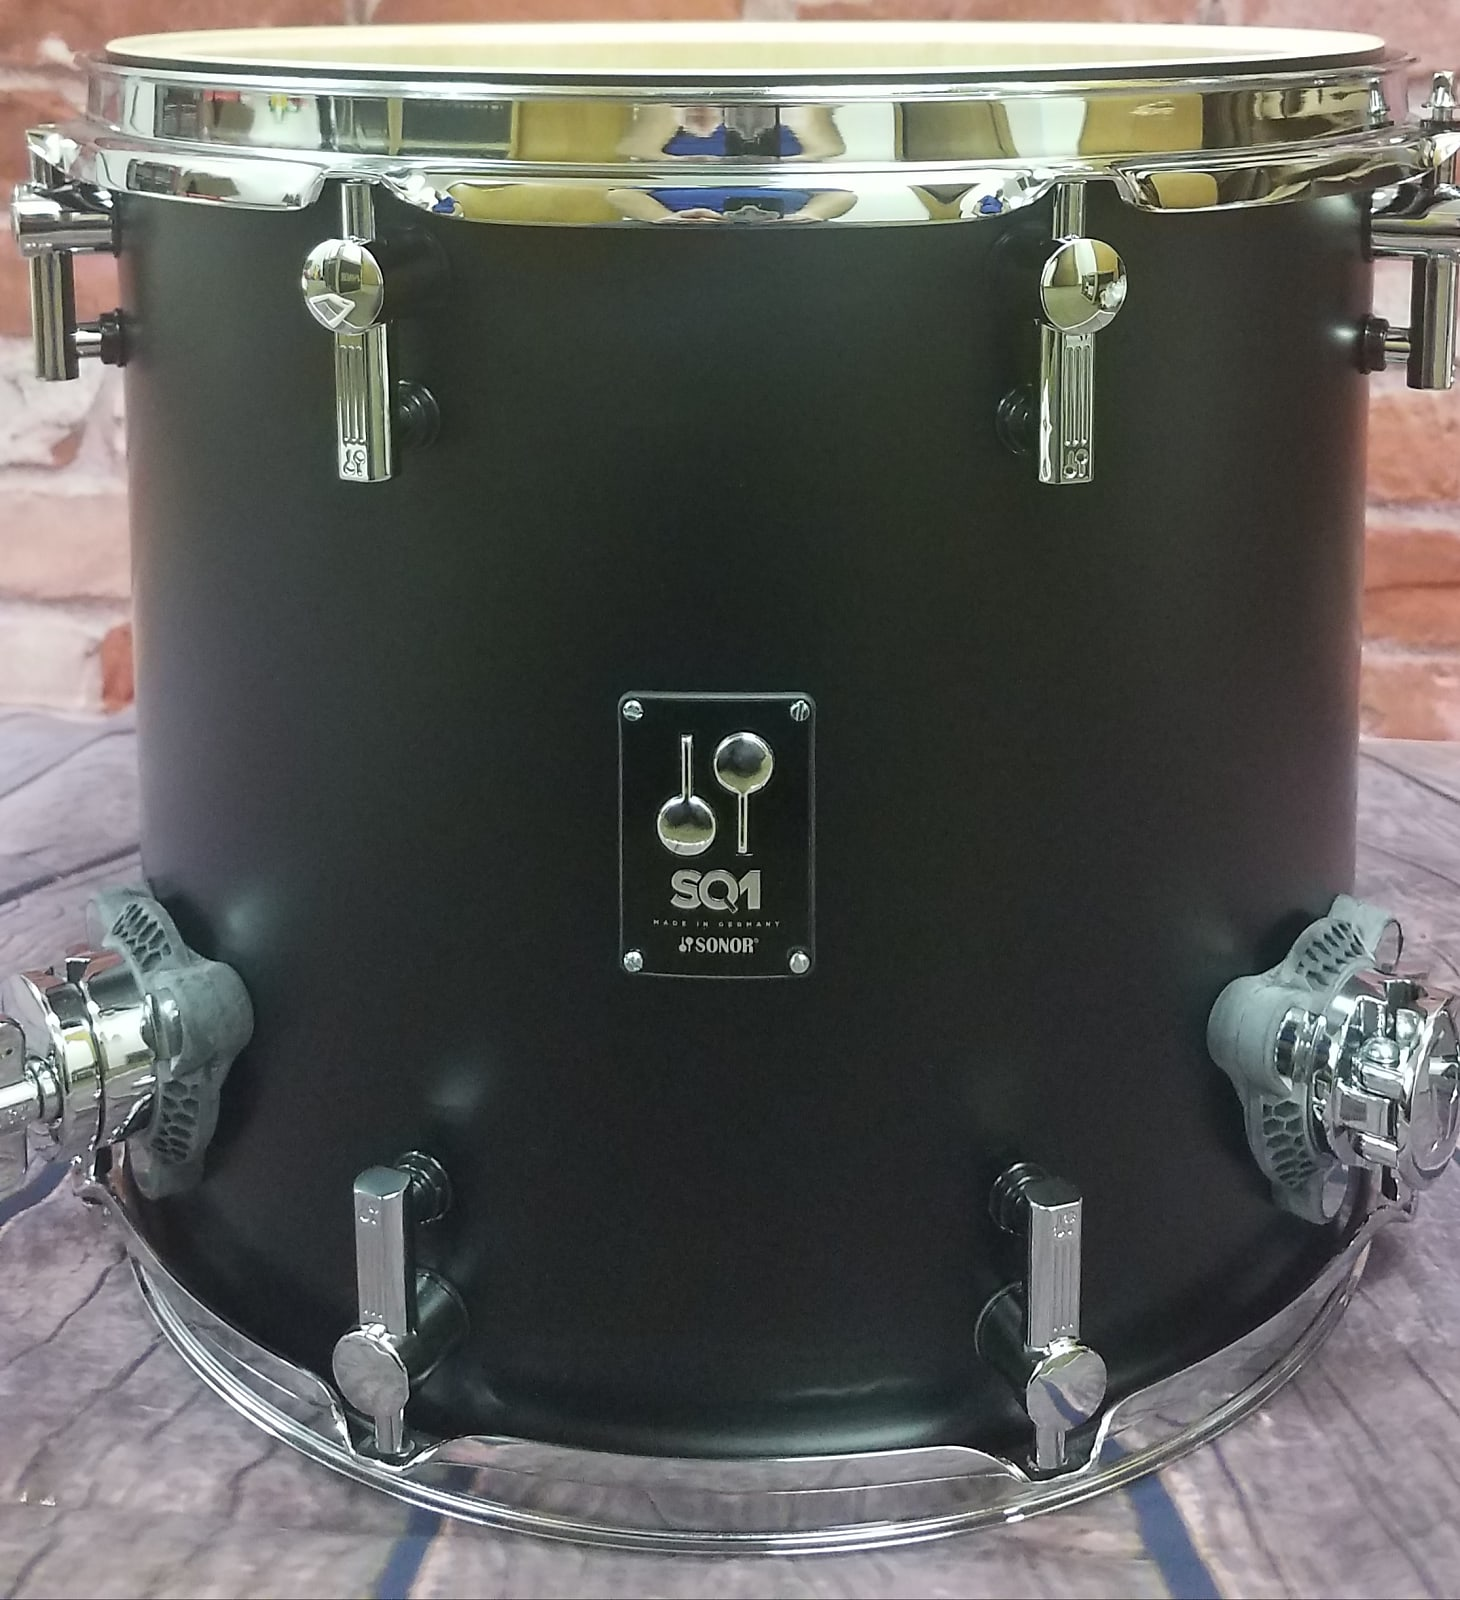 Sonor SQ1 GT Black 20x16/12x8/14x13 Shell Pack +FREE Gig Bags! NEW Authorized Dealer